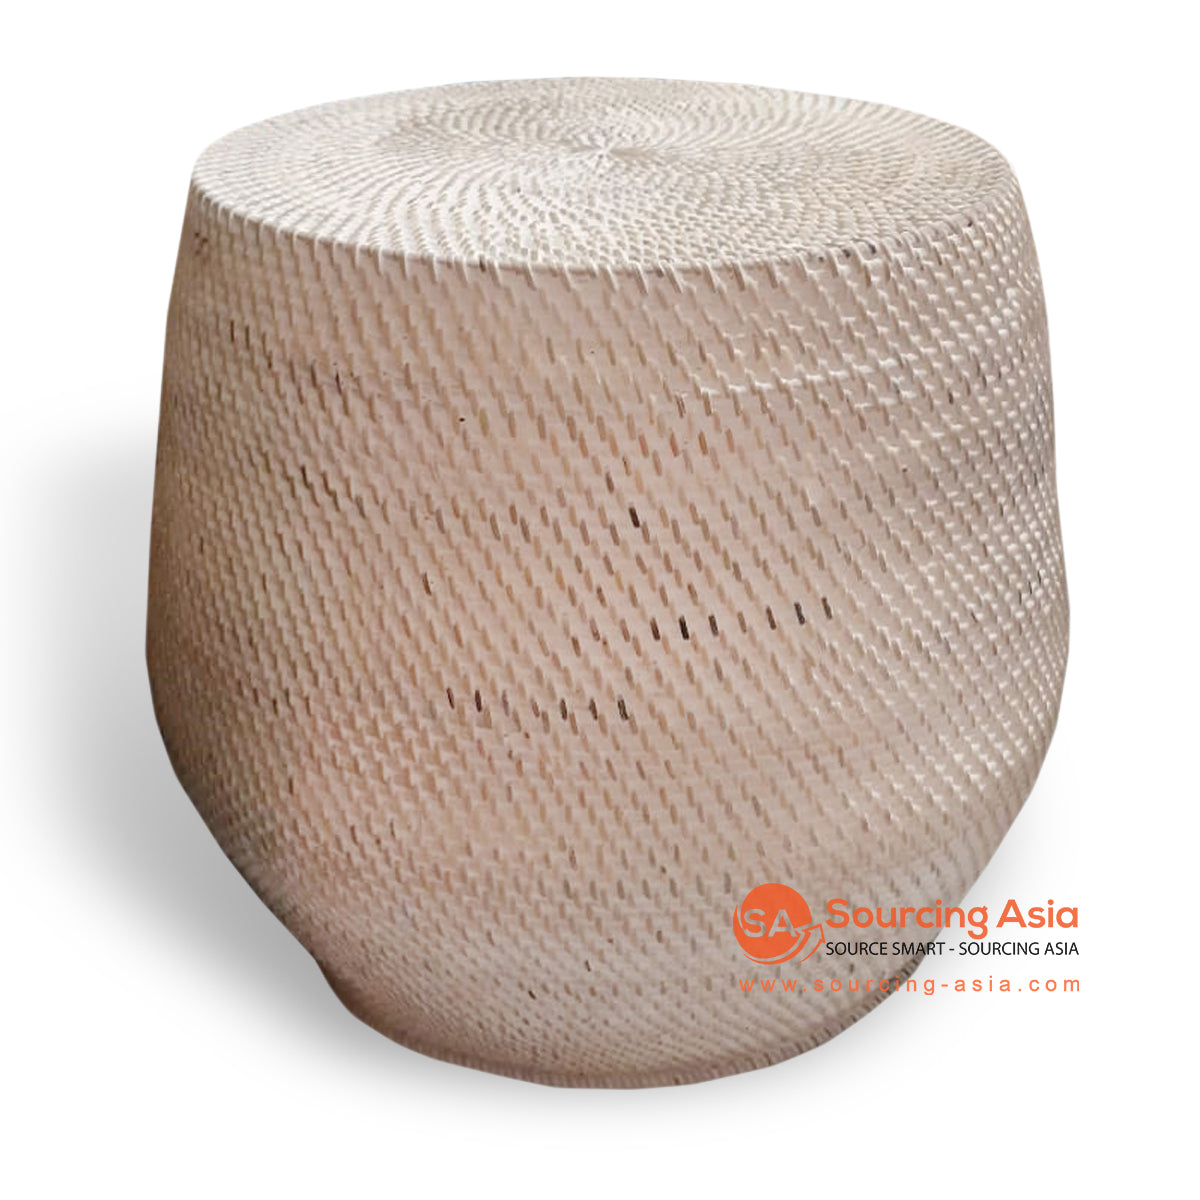 ALI074 RATTAN WOVEN SIDE TABLE